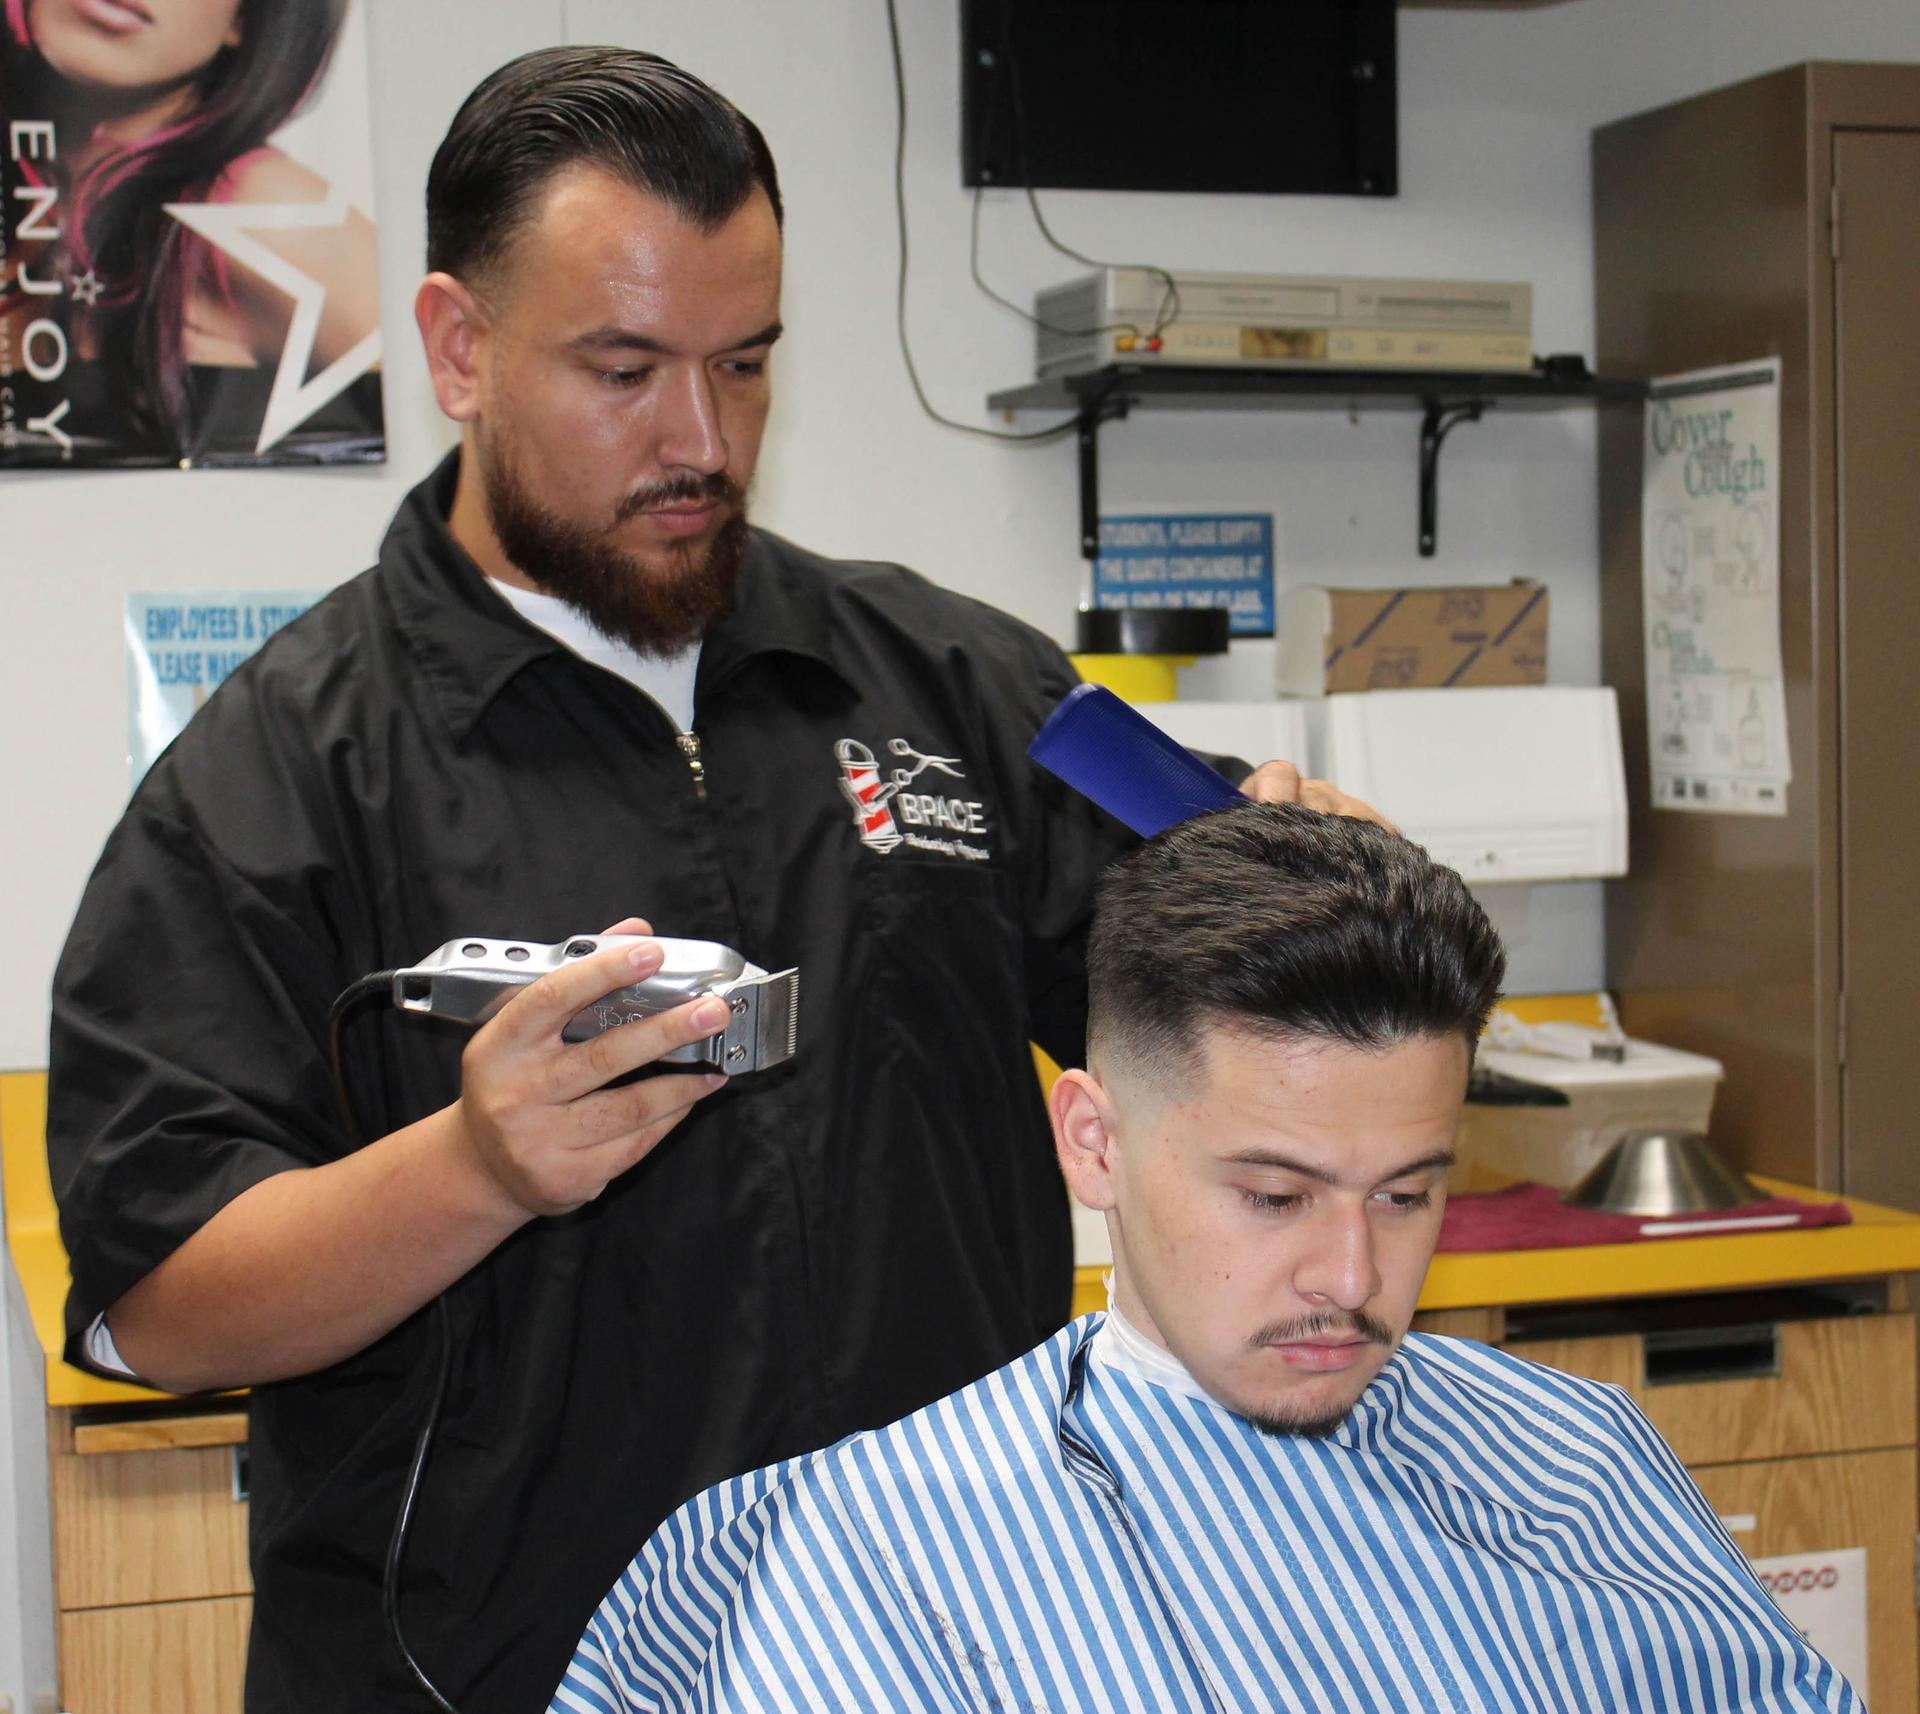 Barbering student giving hair cut